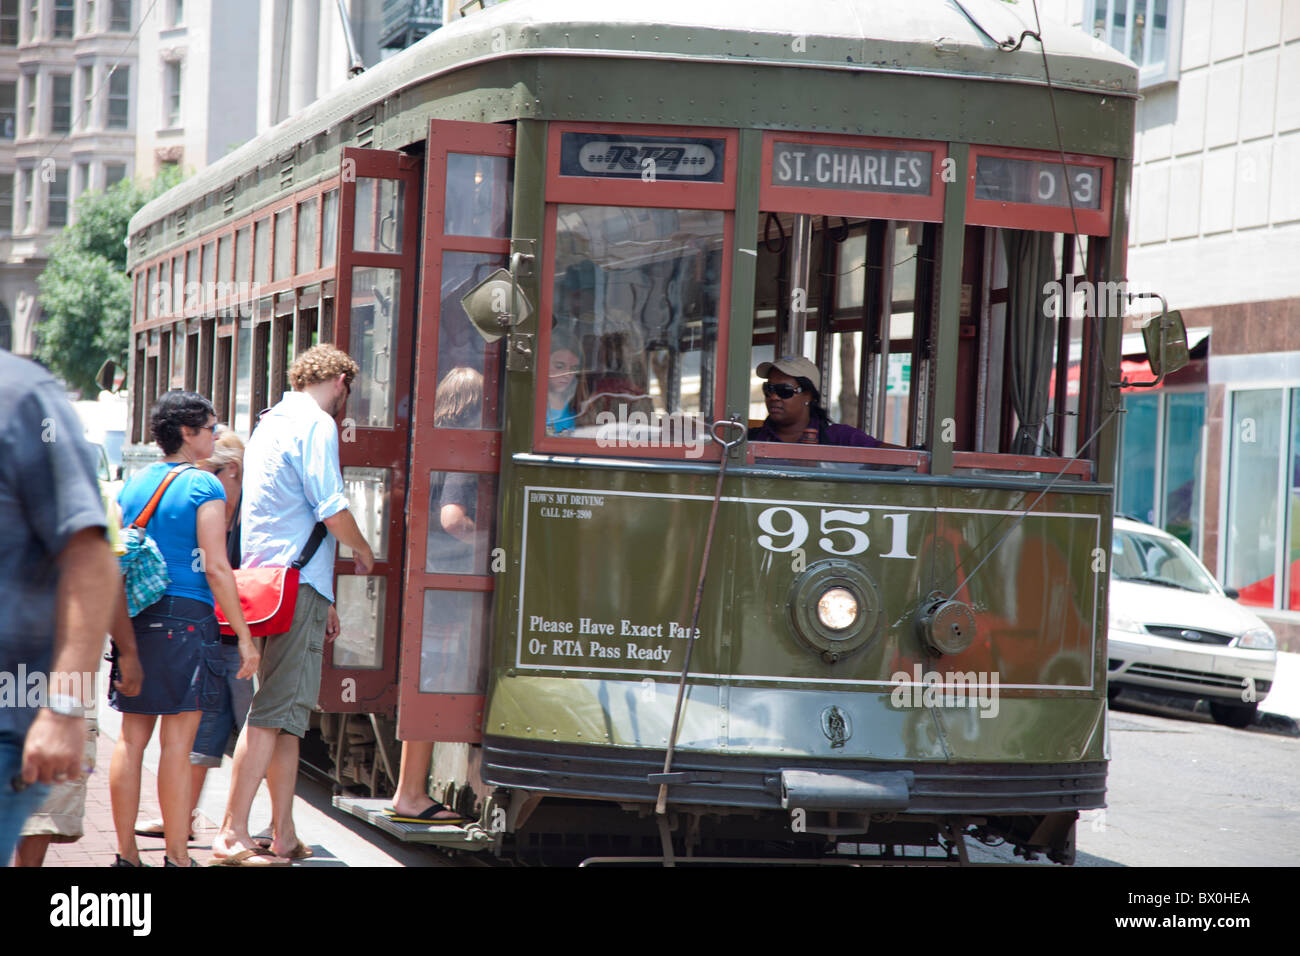 Since the 19th century, New Orleans's St. Charles Street streetcars have provided residents with essential transportation. - Stock Image